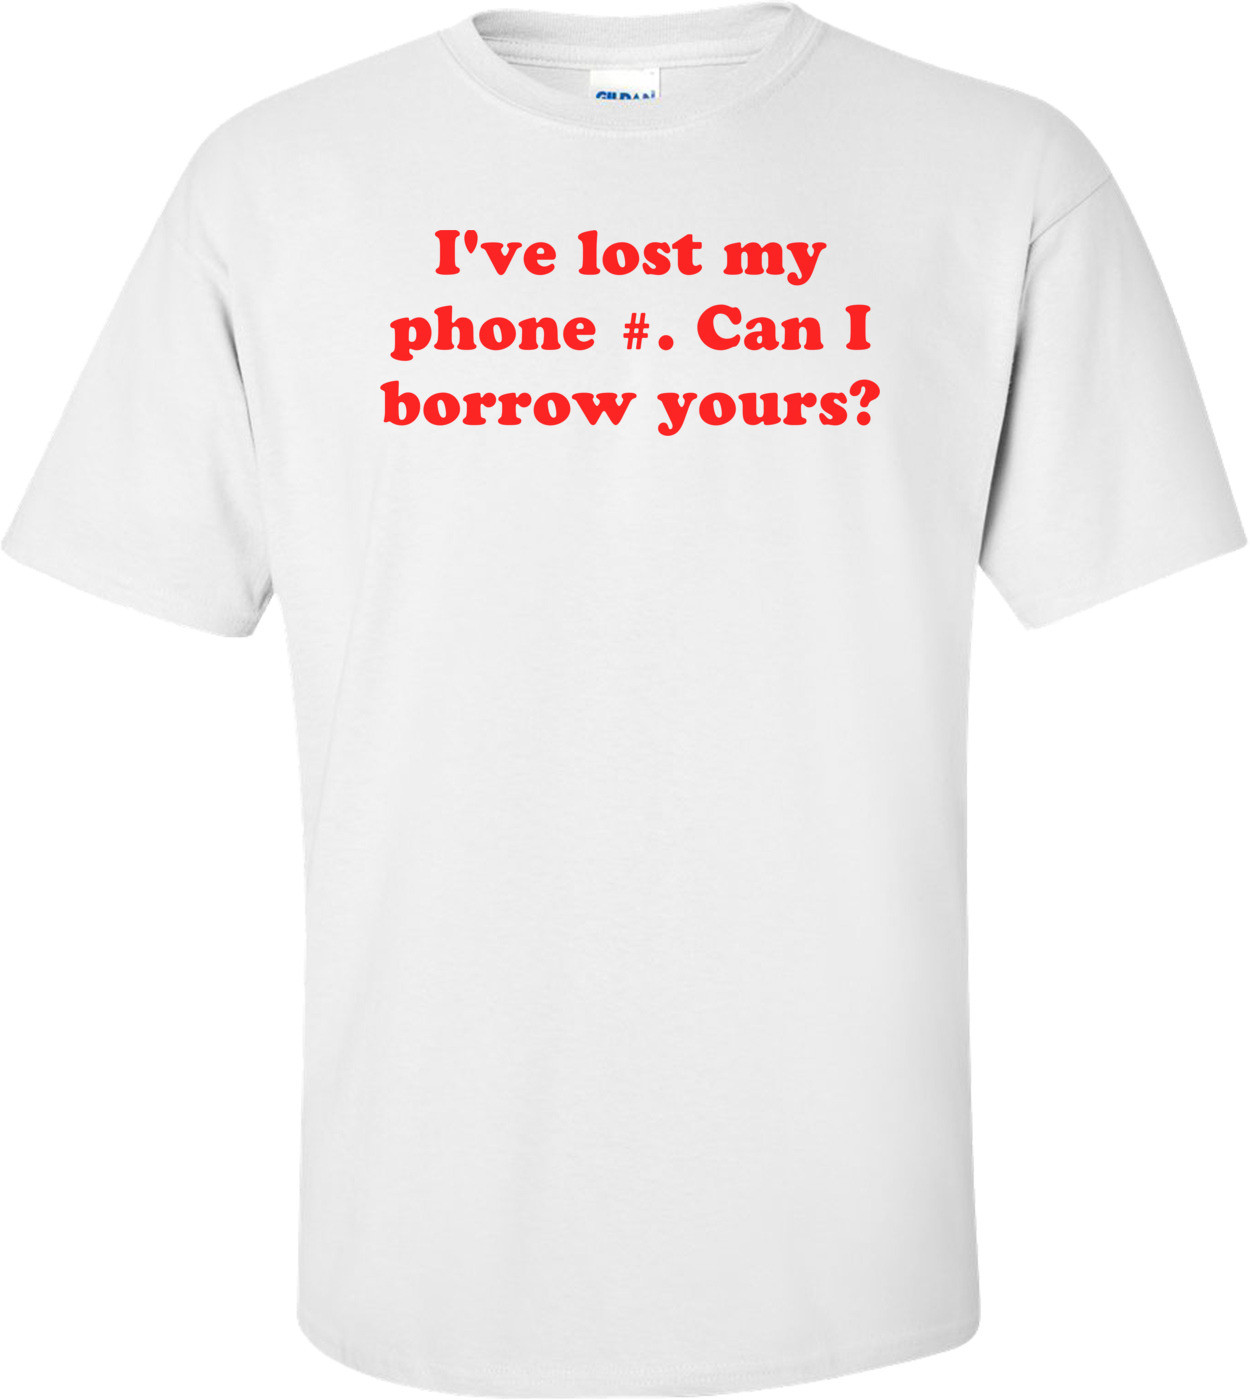 I've lost my phone #. Can I borrow yours? Shirt